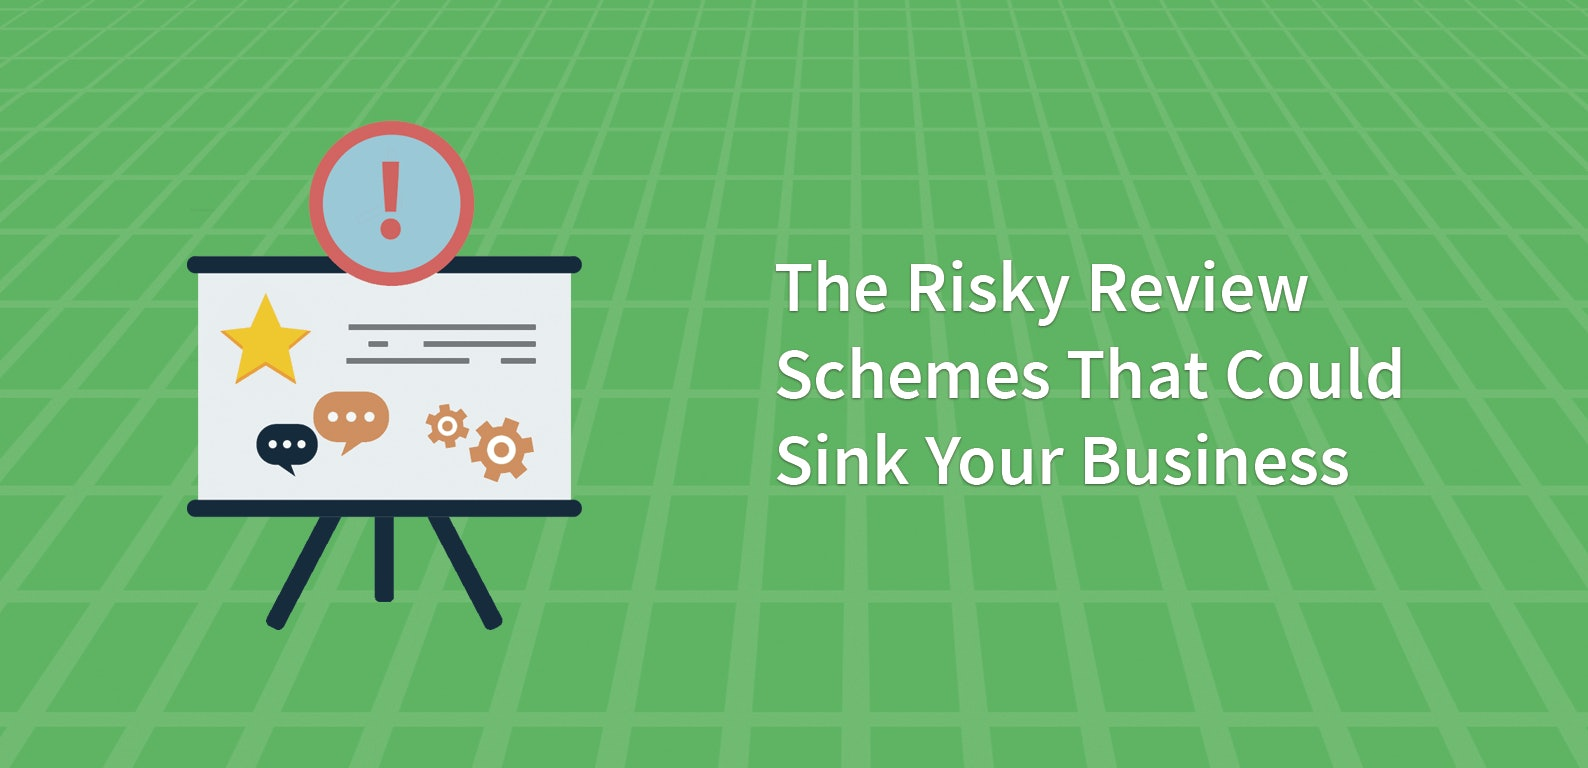 The Risky Review Schemes That Could Sink Your Business